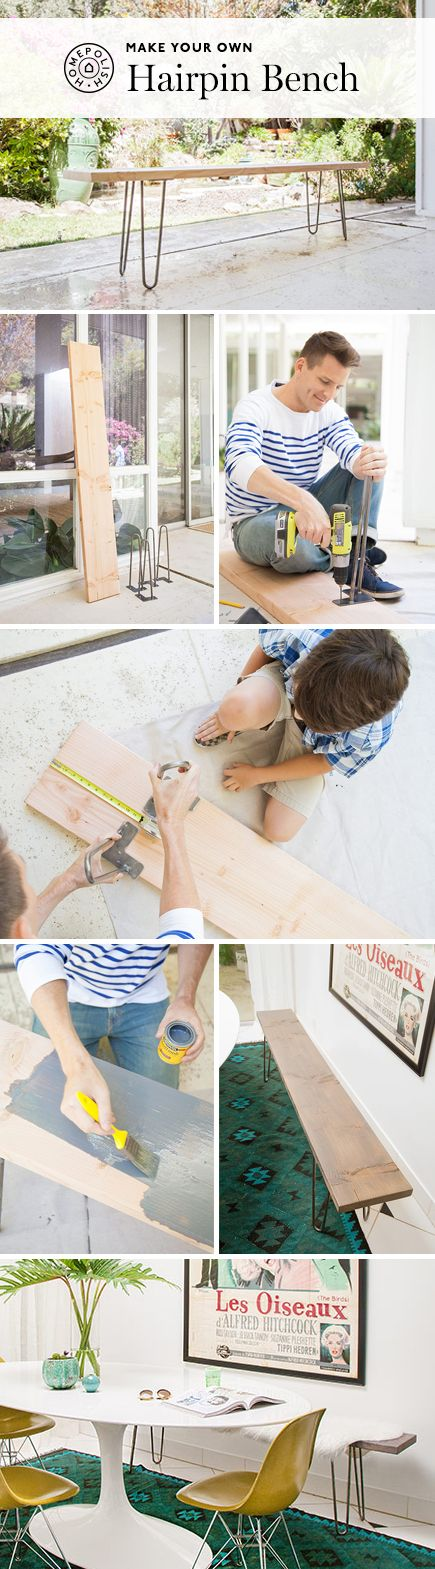 How to Make a Hairpin Bench With Your Friends! #DIY #crafts